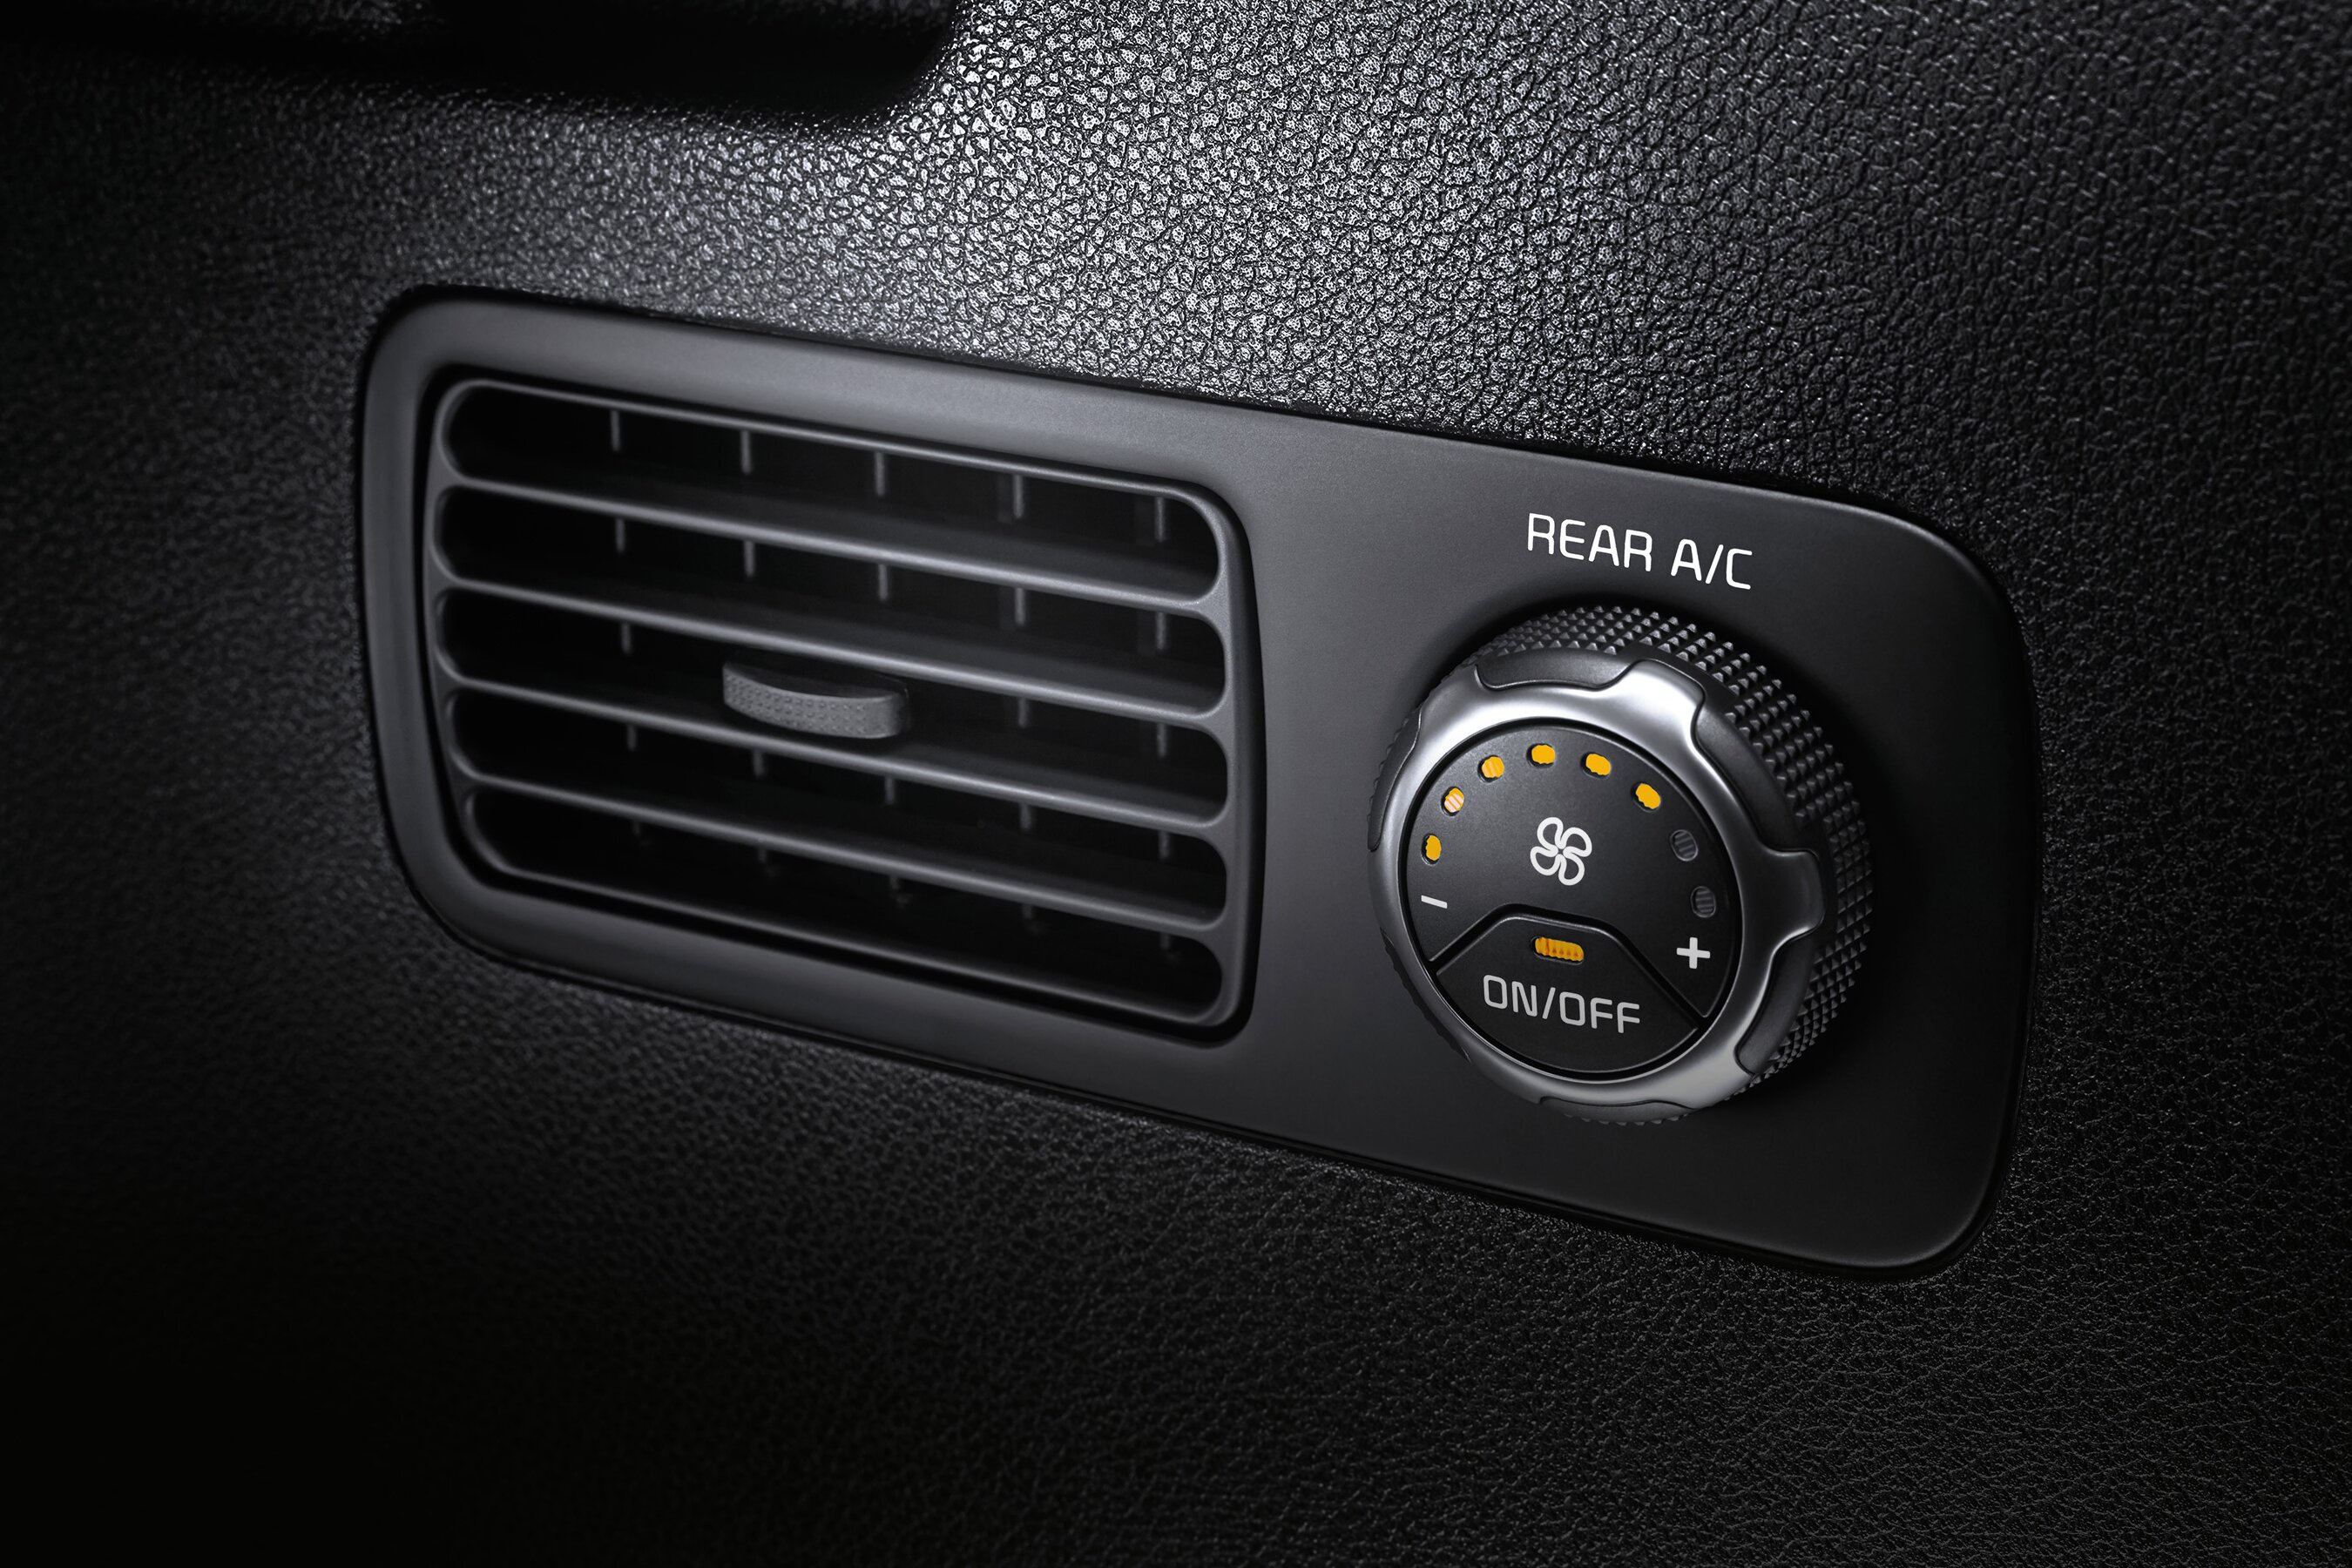 Rear Air Conditioning in the 2020 Kia Sorento